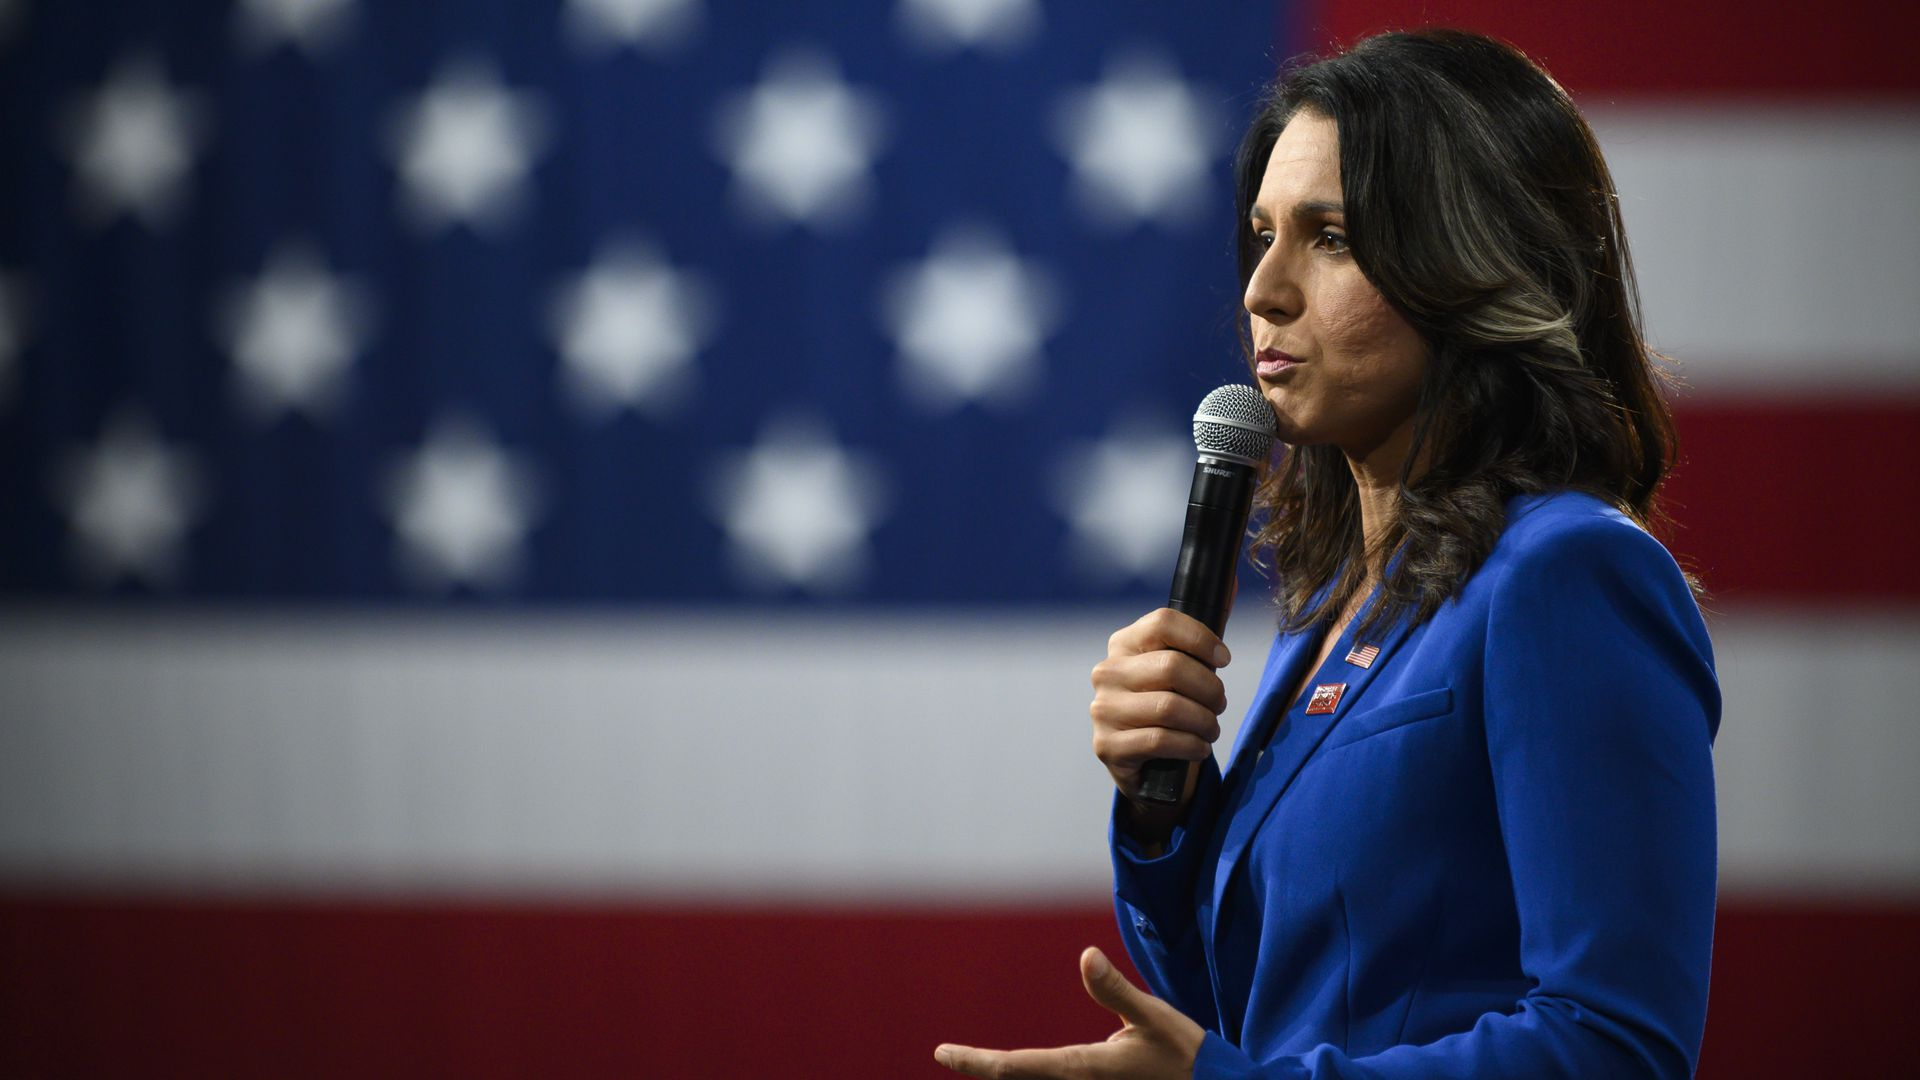 Democratic presidential candidate Rep. Tulsi Gabbard (D-HI) speaks during a forum on gun safety at the Iowa Events Center on August 10, 2019 in Des Moines, Iowa.